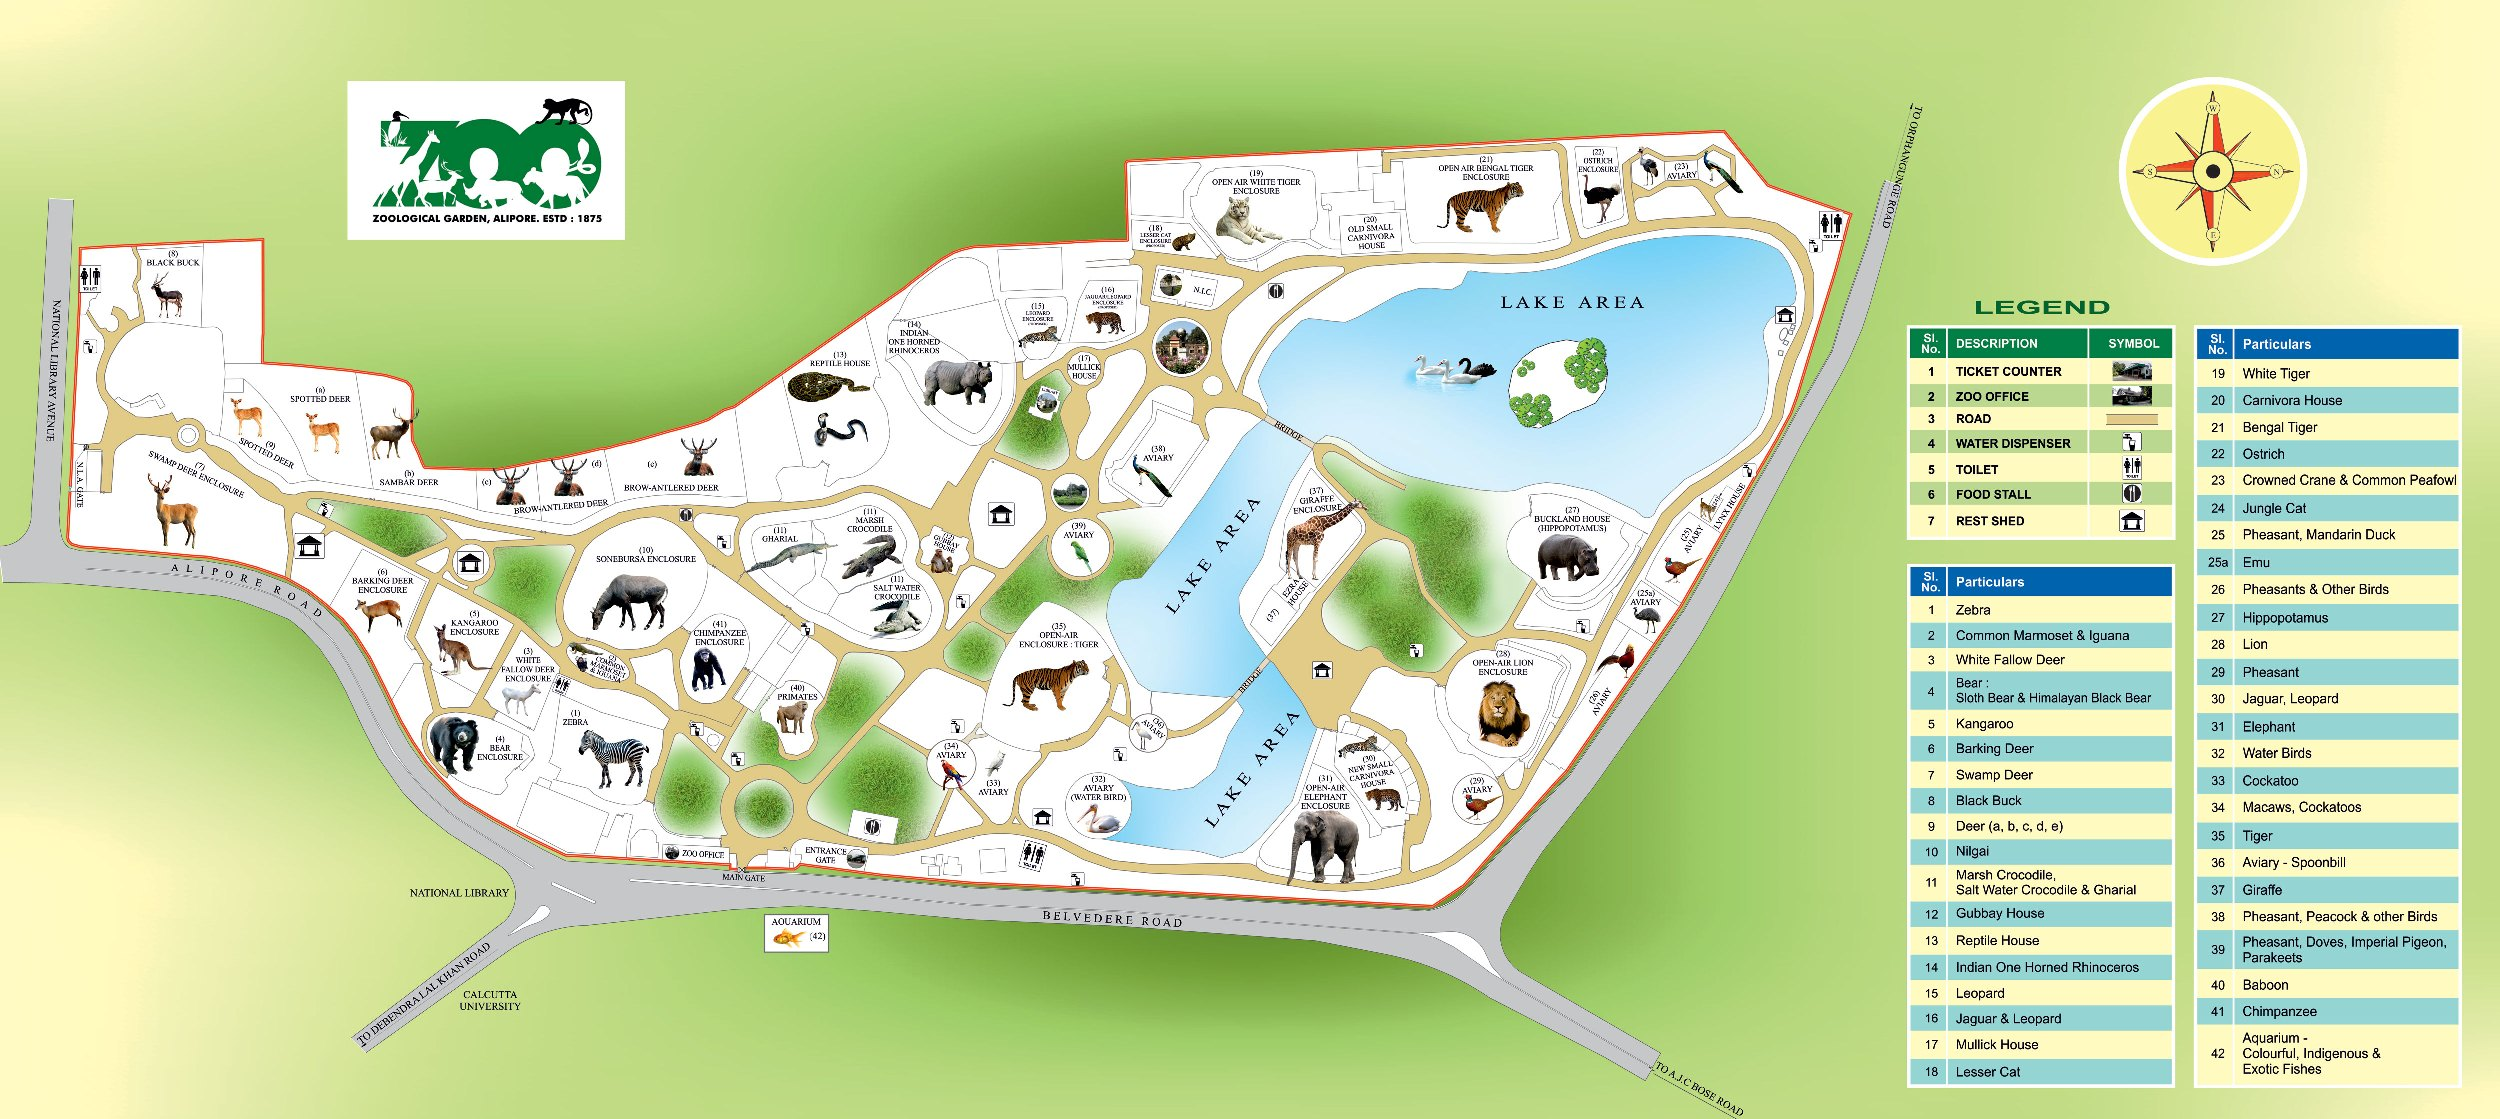 Alipore Zoo Map displays Ticket counter, zoo office, road, water dispenser, toilet, food stalls, sheds, etc.